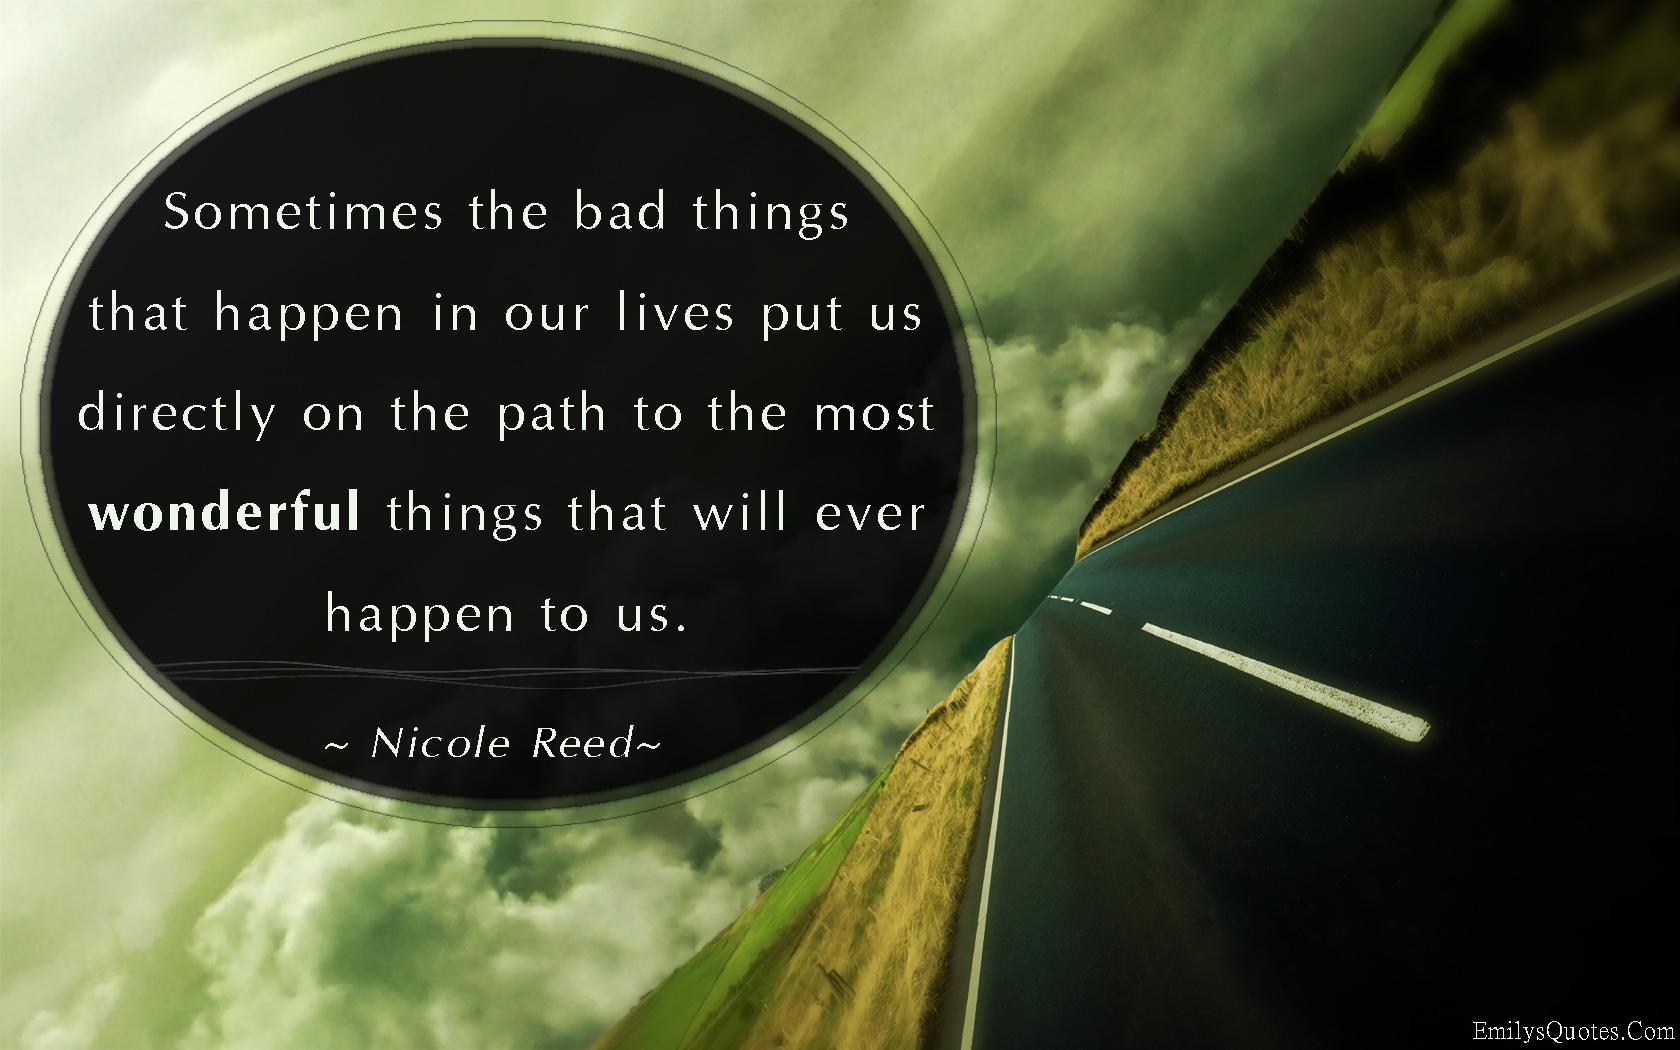 Great Positive Quotes About Life Sometimes The Bad Things That Happen In Our Lives Put Us Directly